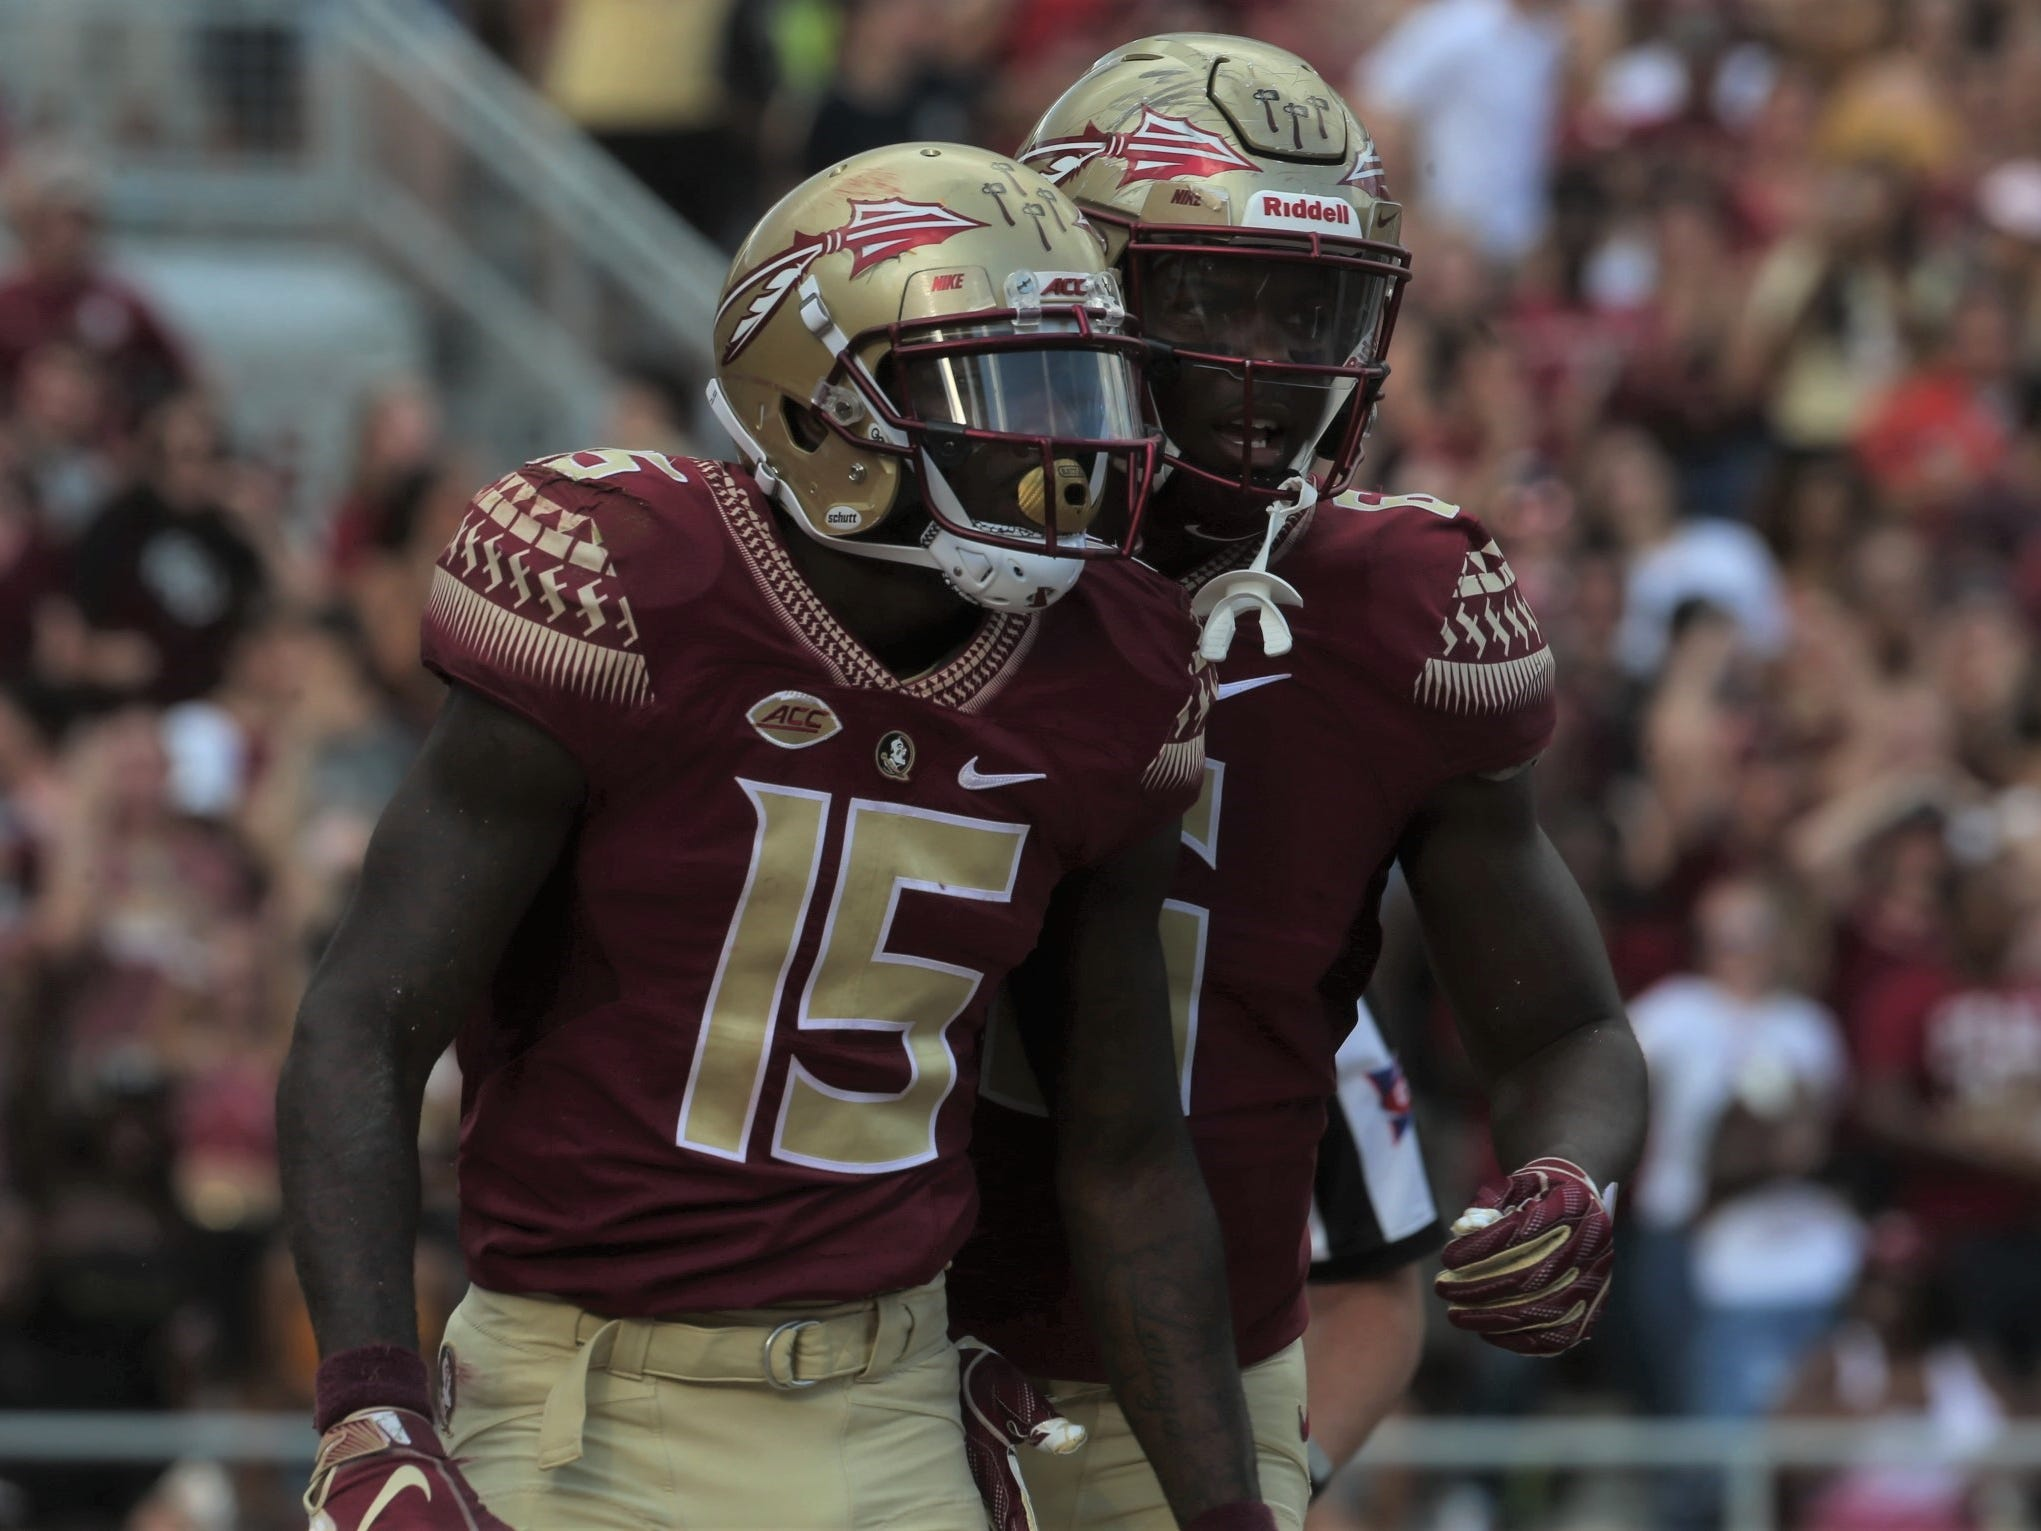 Florida State receiver Tamorrion Terry (15) celebrates with tight end Tre' McKitty after Terry thought he had a long touchdown catch during a game against Wake Forest at Doak Campbell Stadium on Saturday, Oct. 20, 2018.A flag wiped out the play.